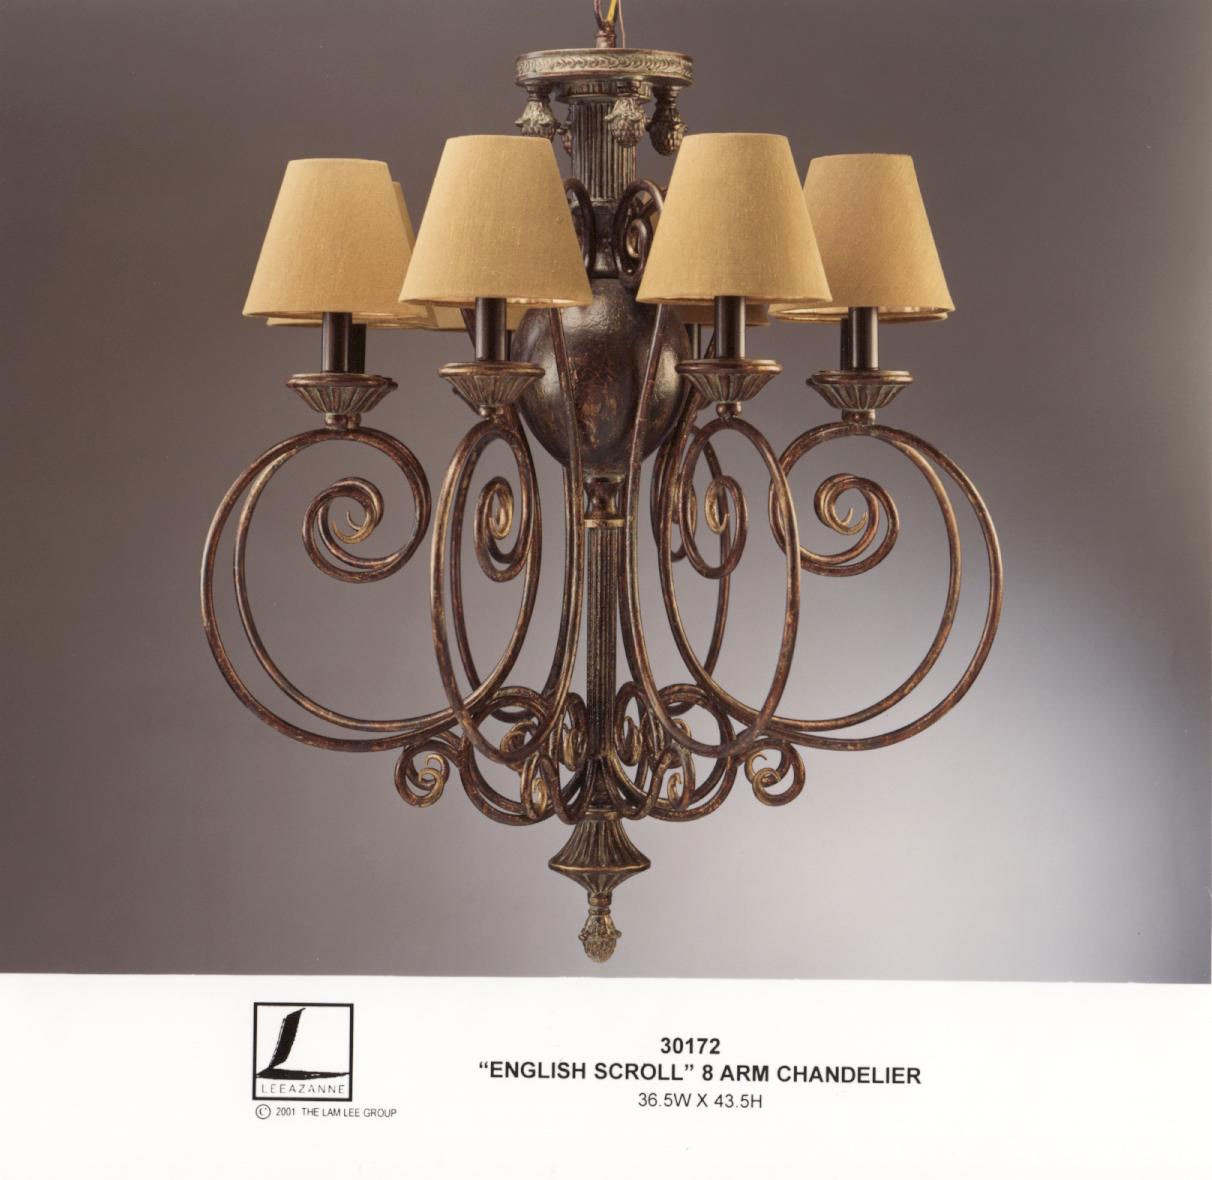 Chandelier english scroll 8 armd93x110h marco polo antiques zoom arubaitofo Gallery